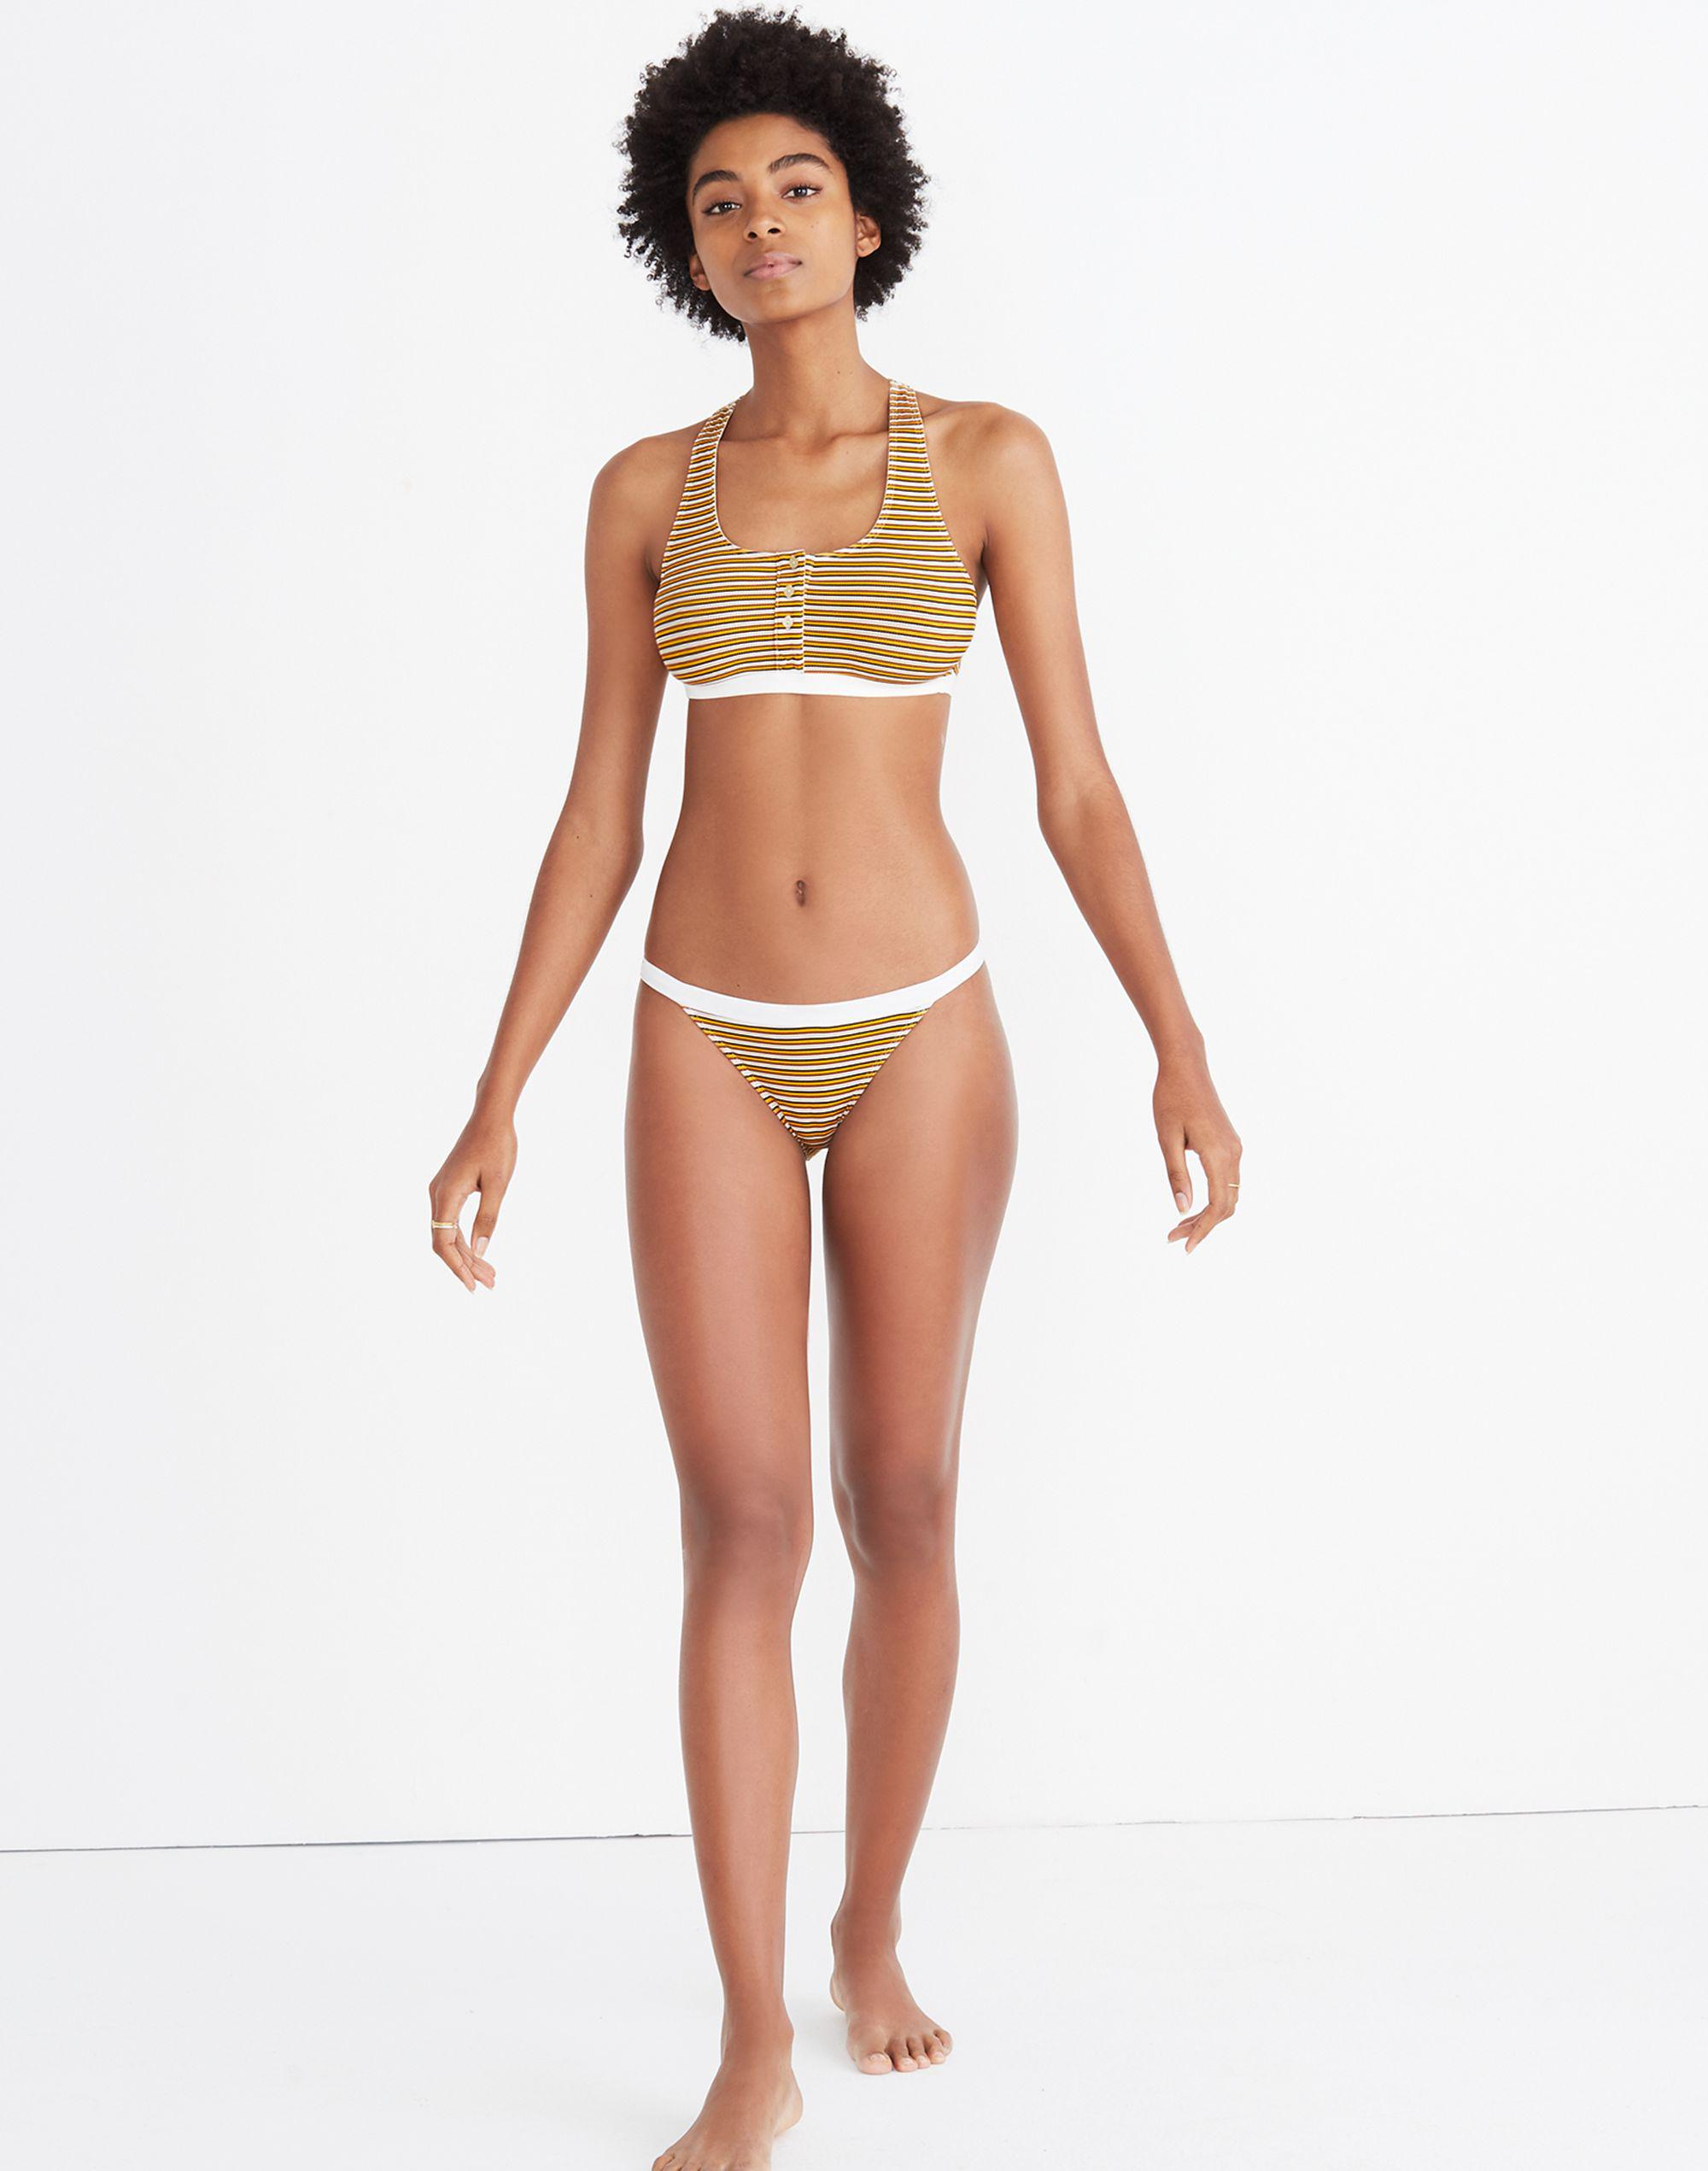 Madewell Launches a Lingerie Line: Madewell Intimates forecast